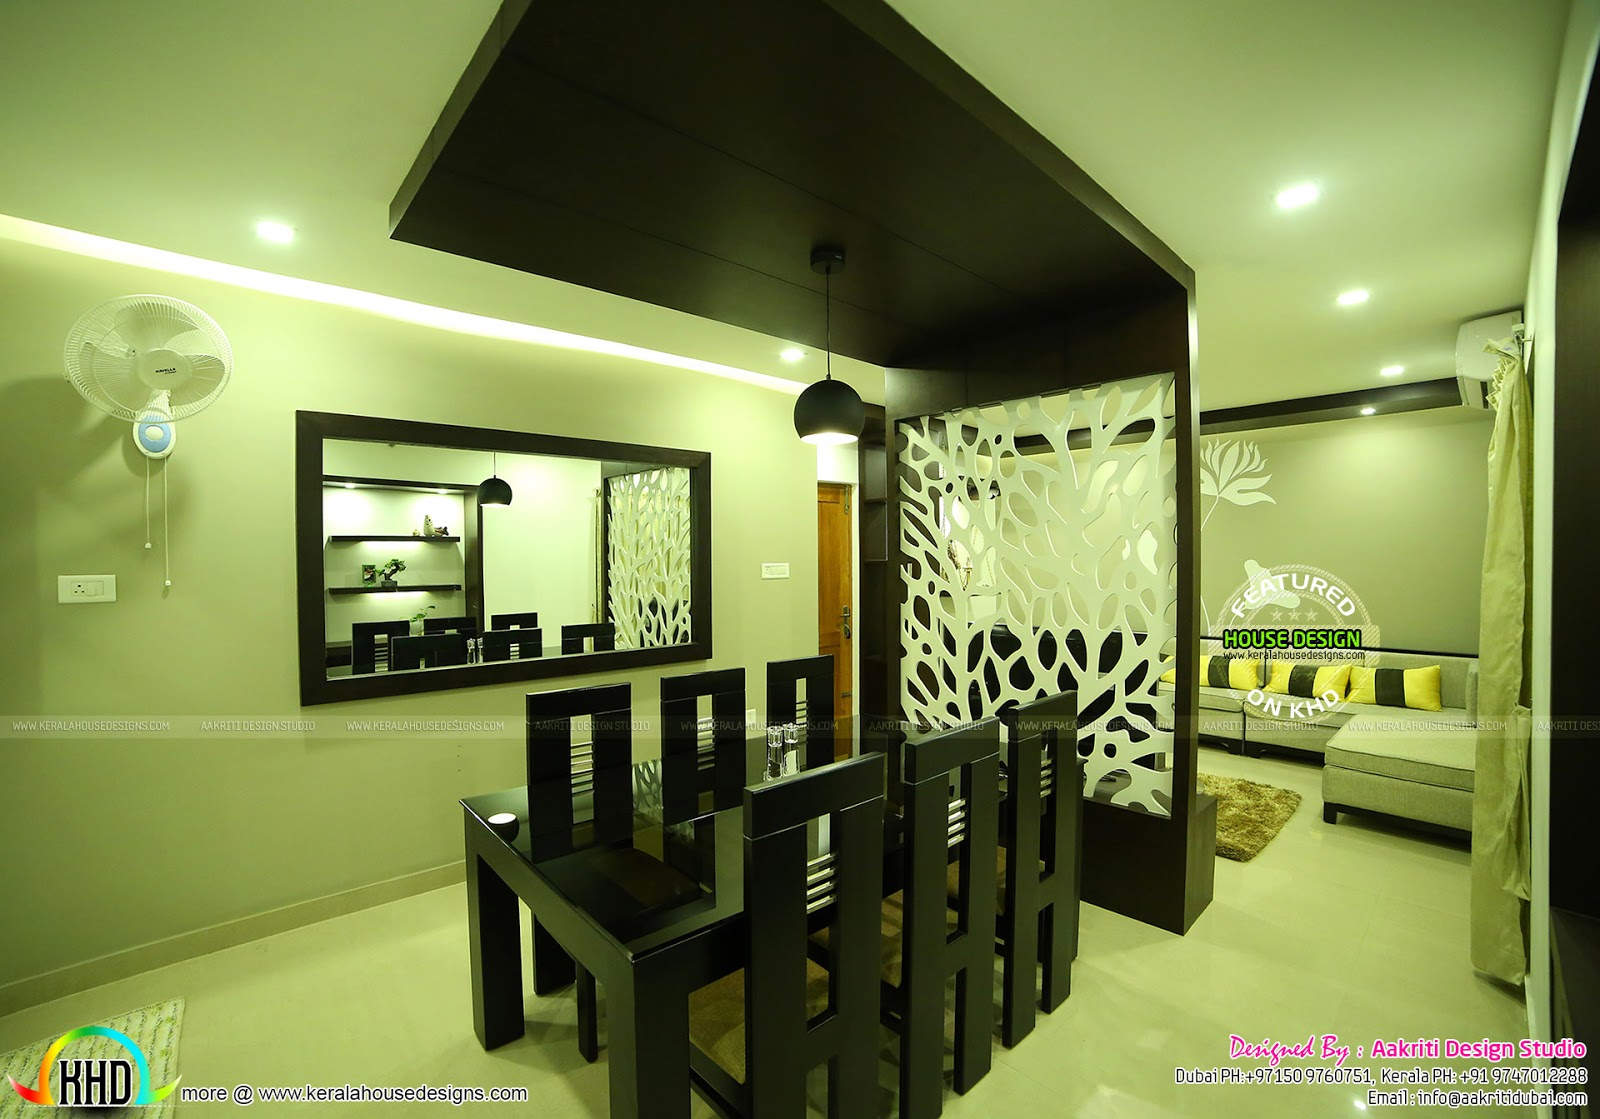 Finished Interior Photos From Kannur Kerala